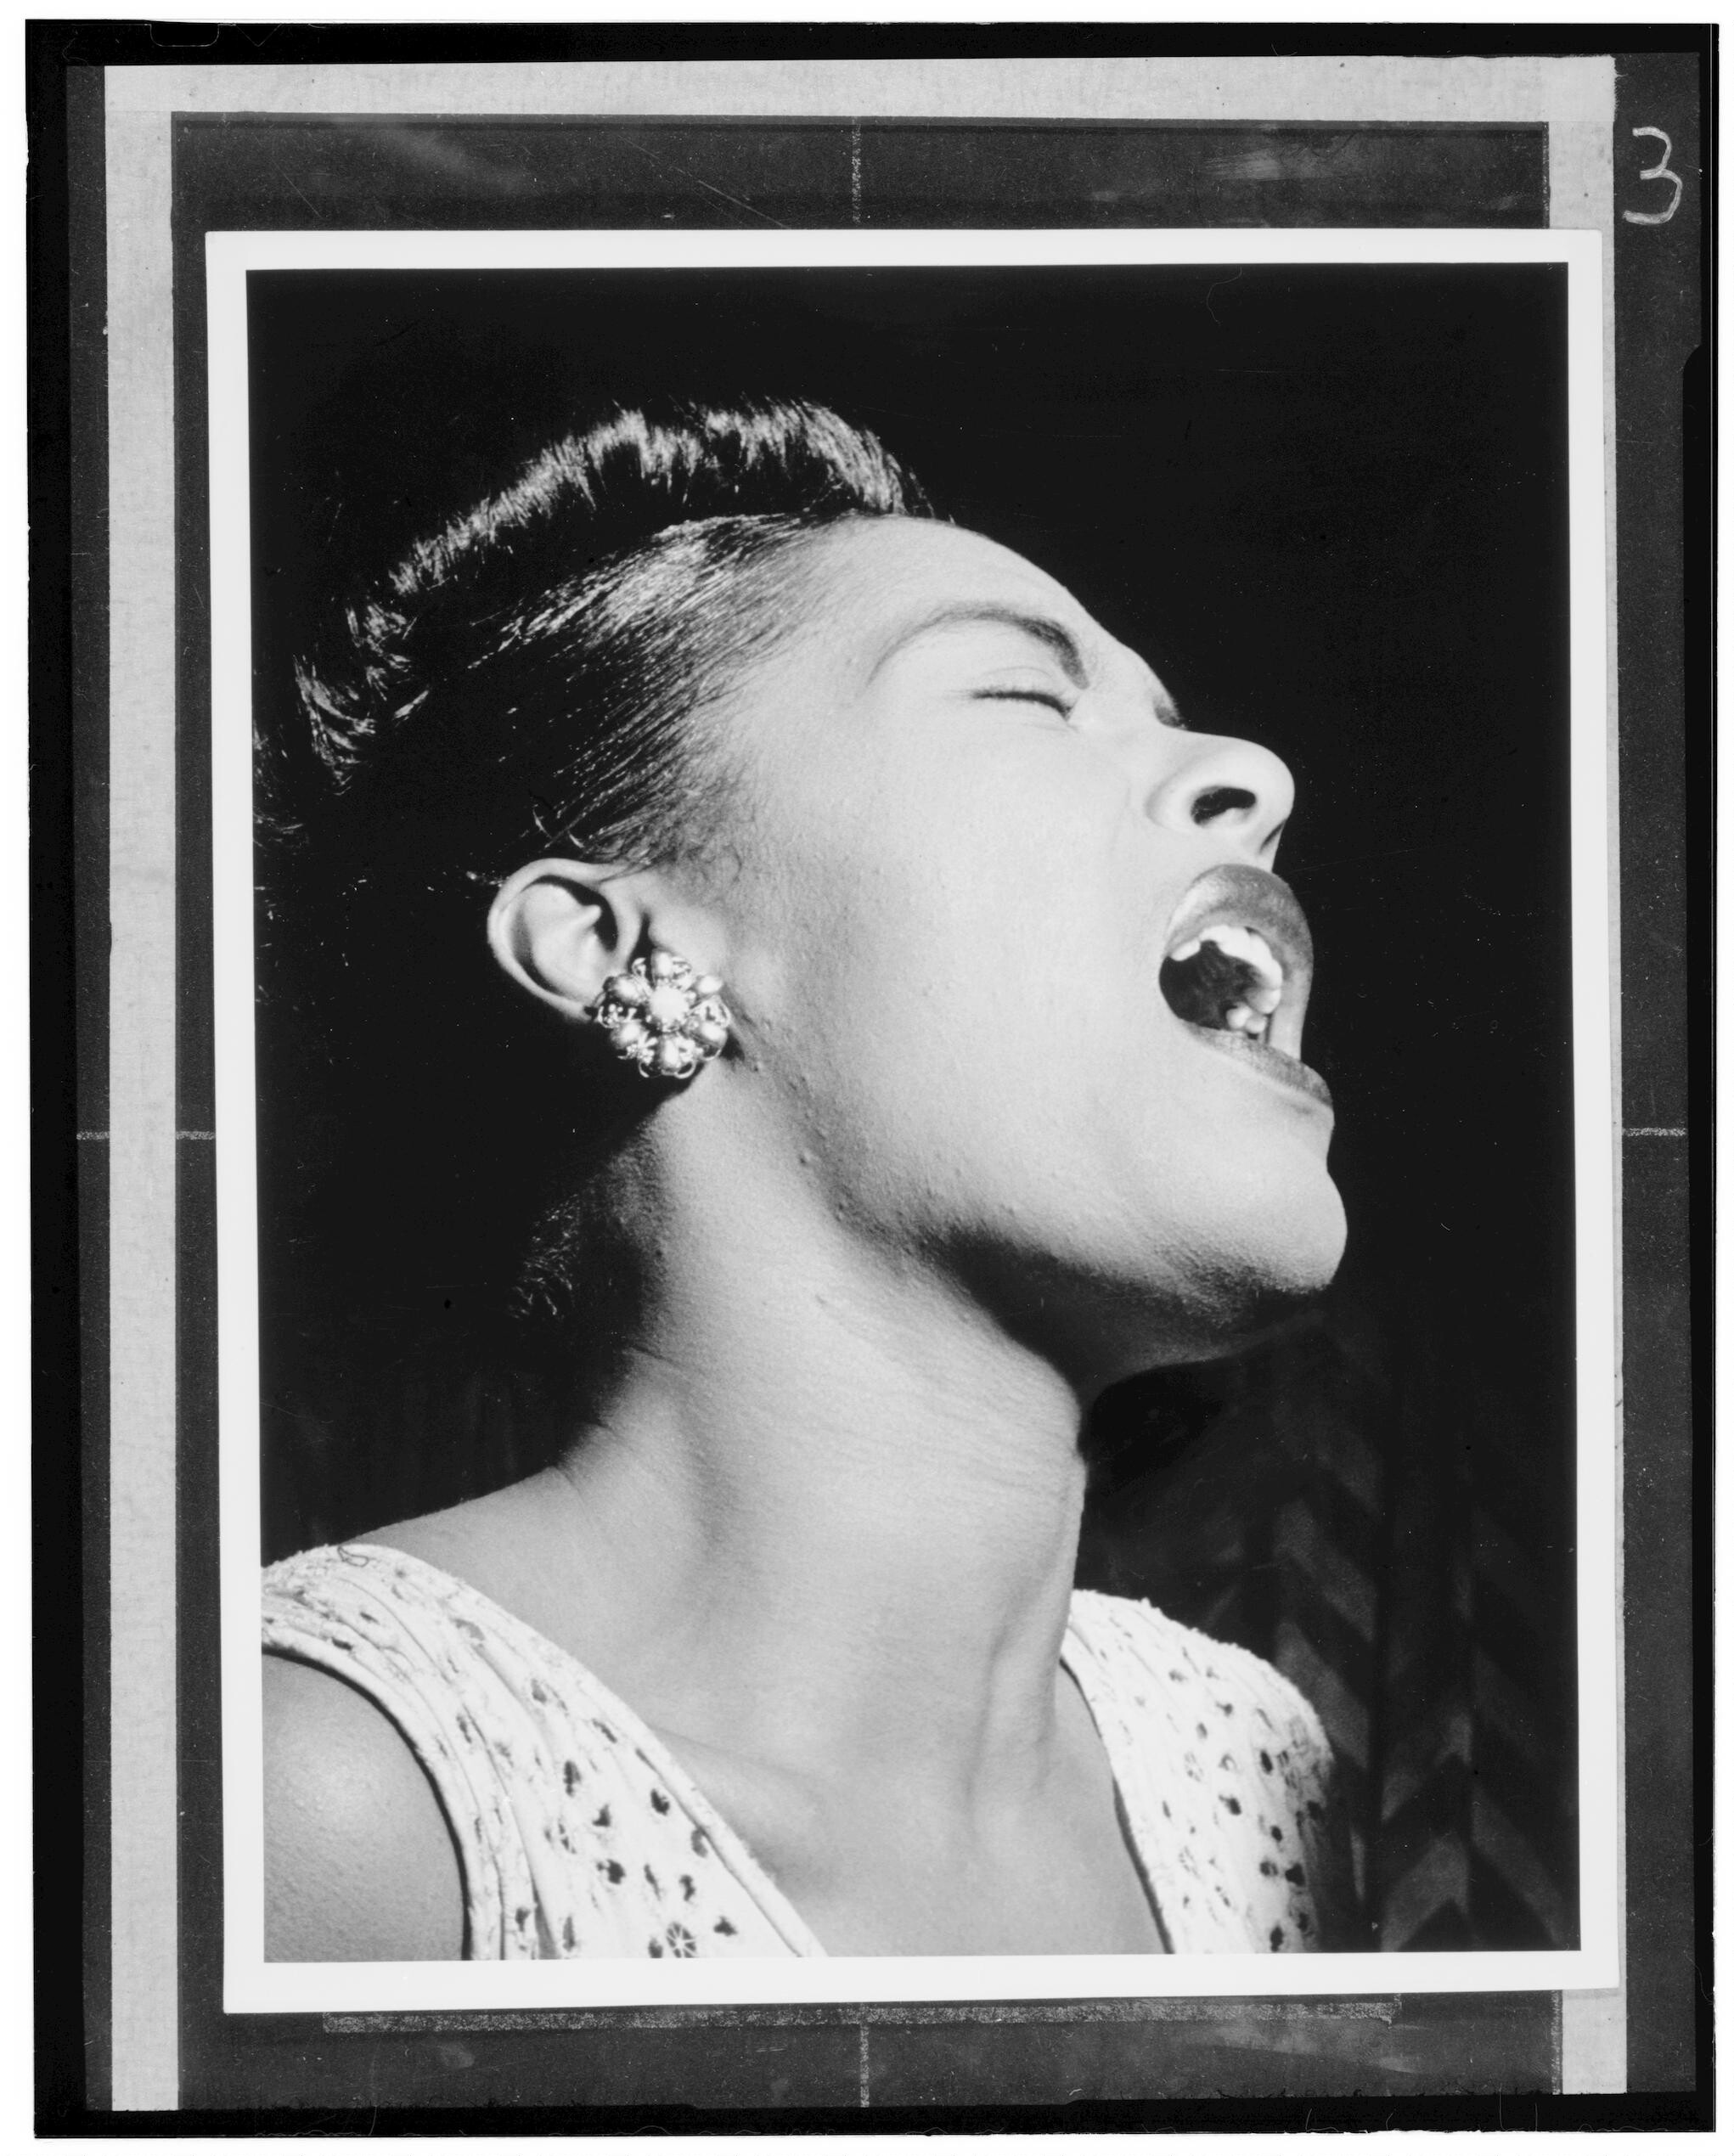 Portrait of Billie Holiday, Downbeat, New York, N.Y., ca. Feb. 1947. William P. Gottlieb/Ira and Leonore S. Gershwin Fund Collection, Music Division, Library of Congress.